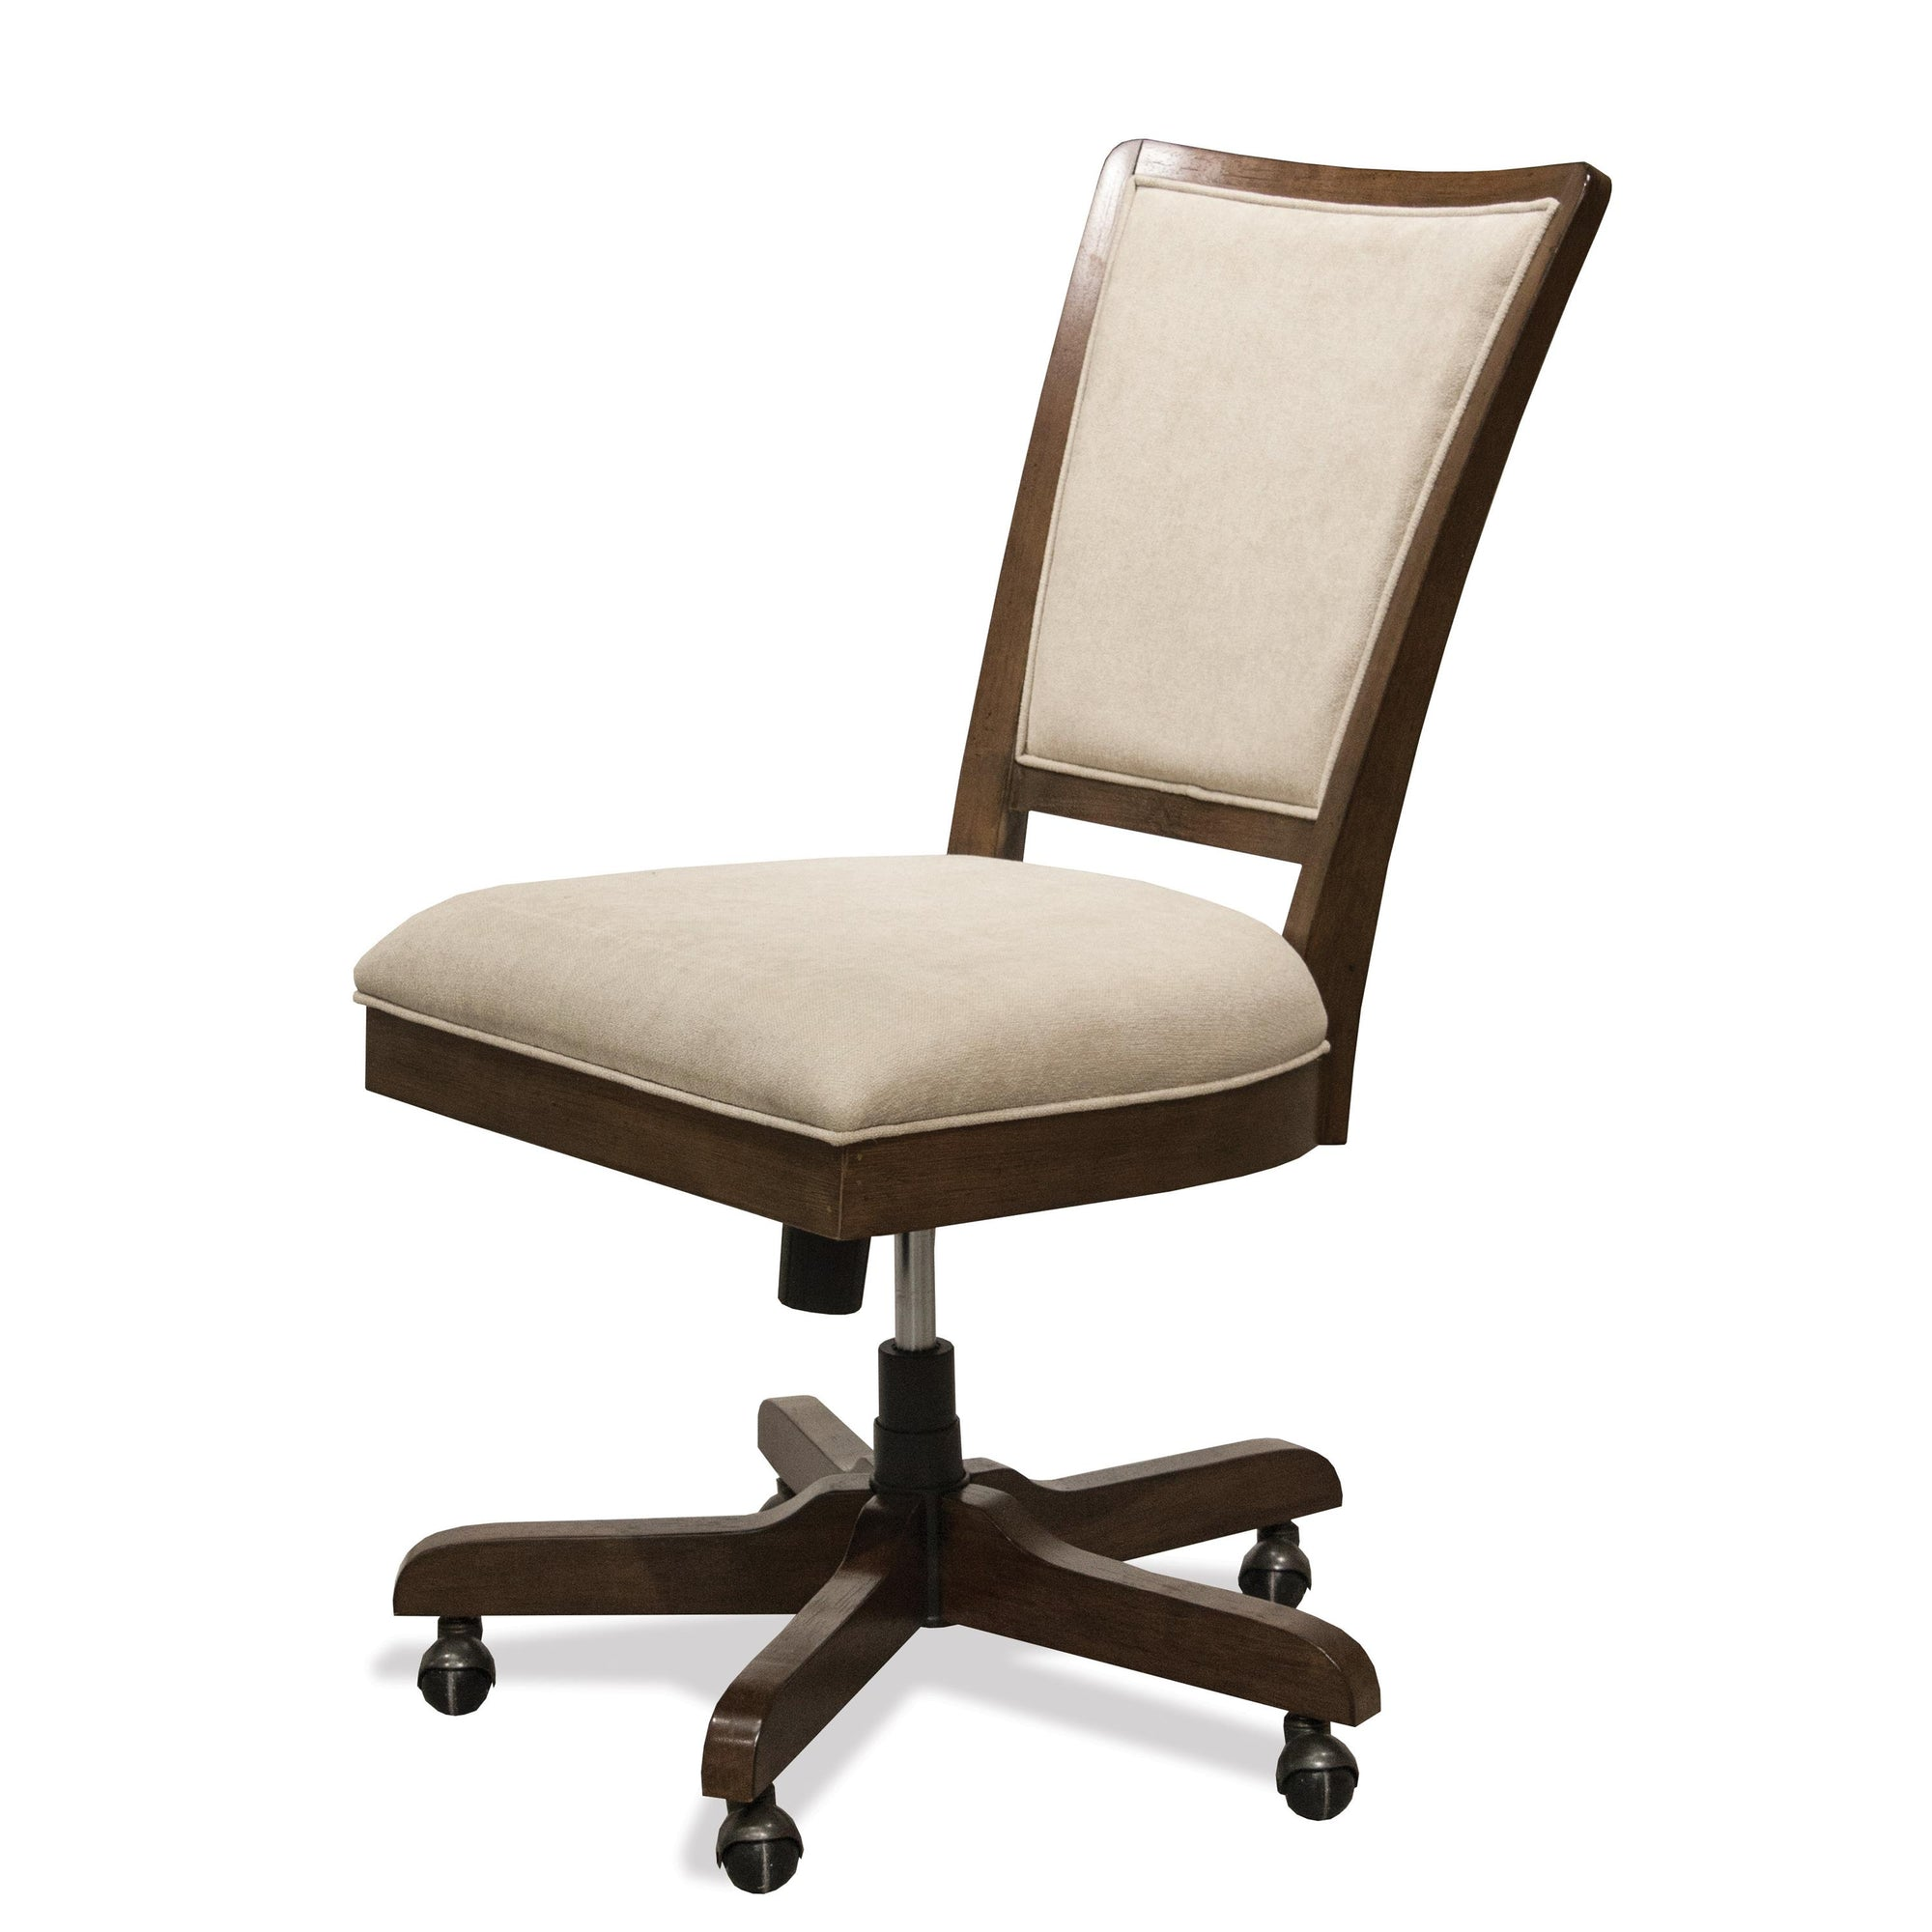 Vogue Upholstered Desk Chair